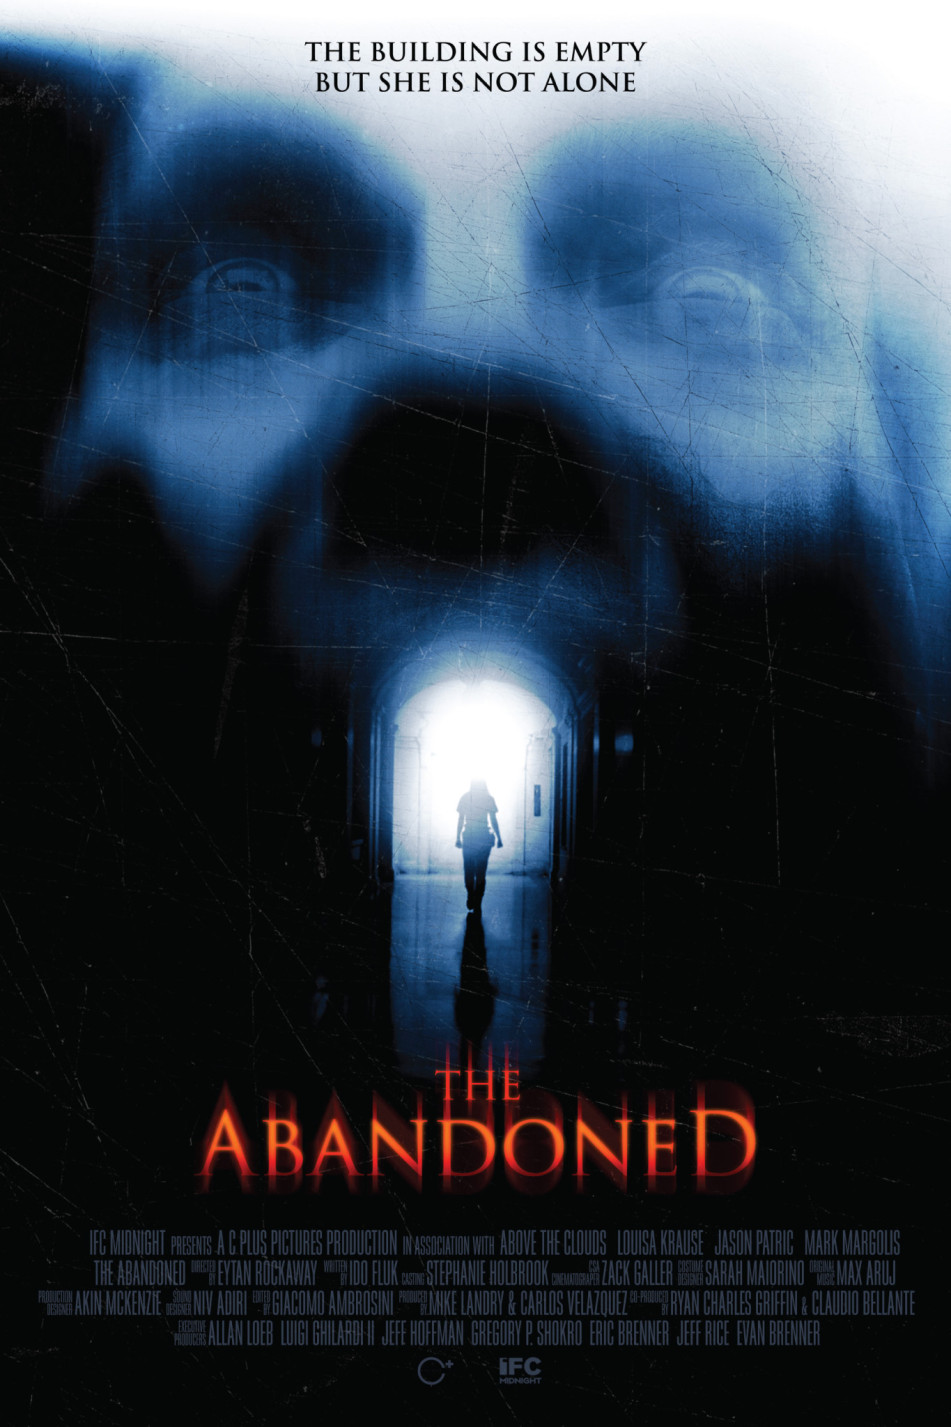 ABANDONED poster web 951x1427 - The Abandoned (Movie Review)